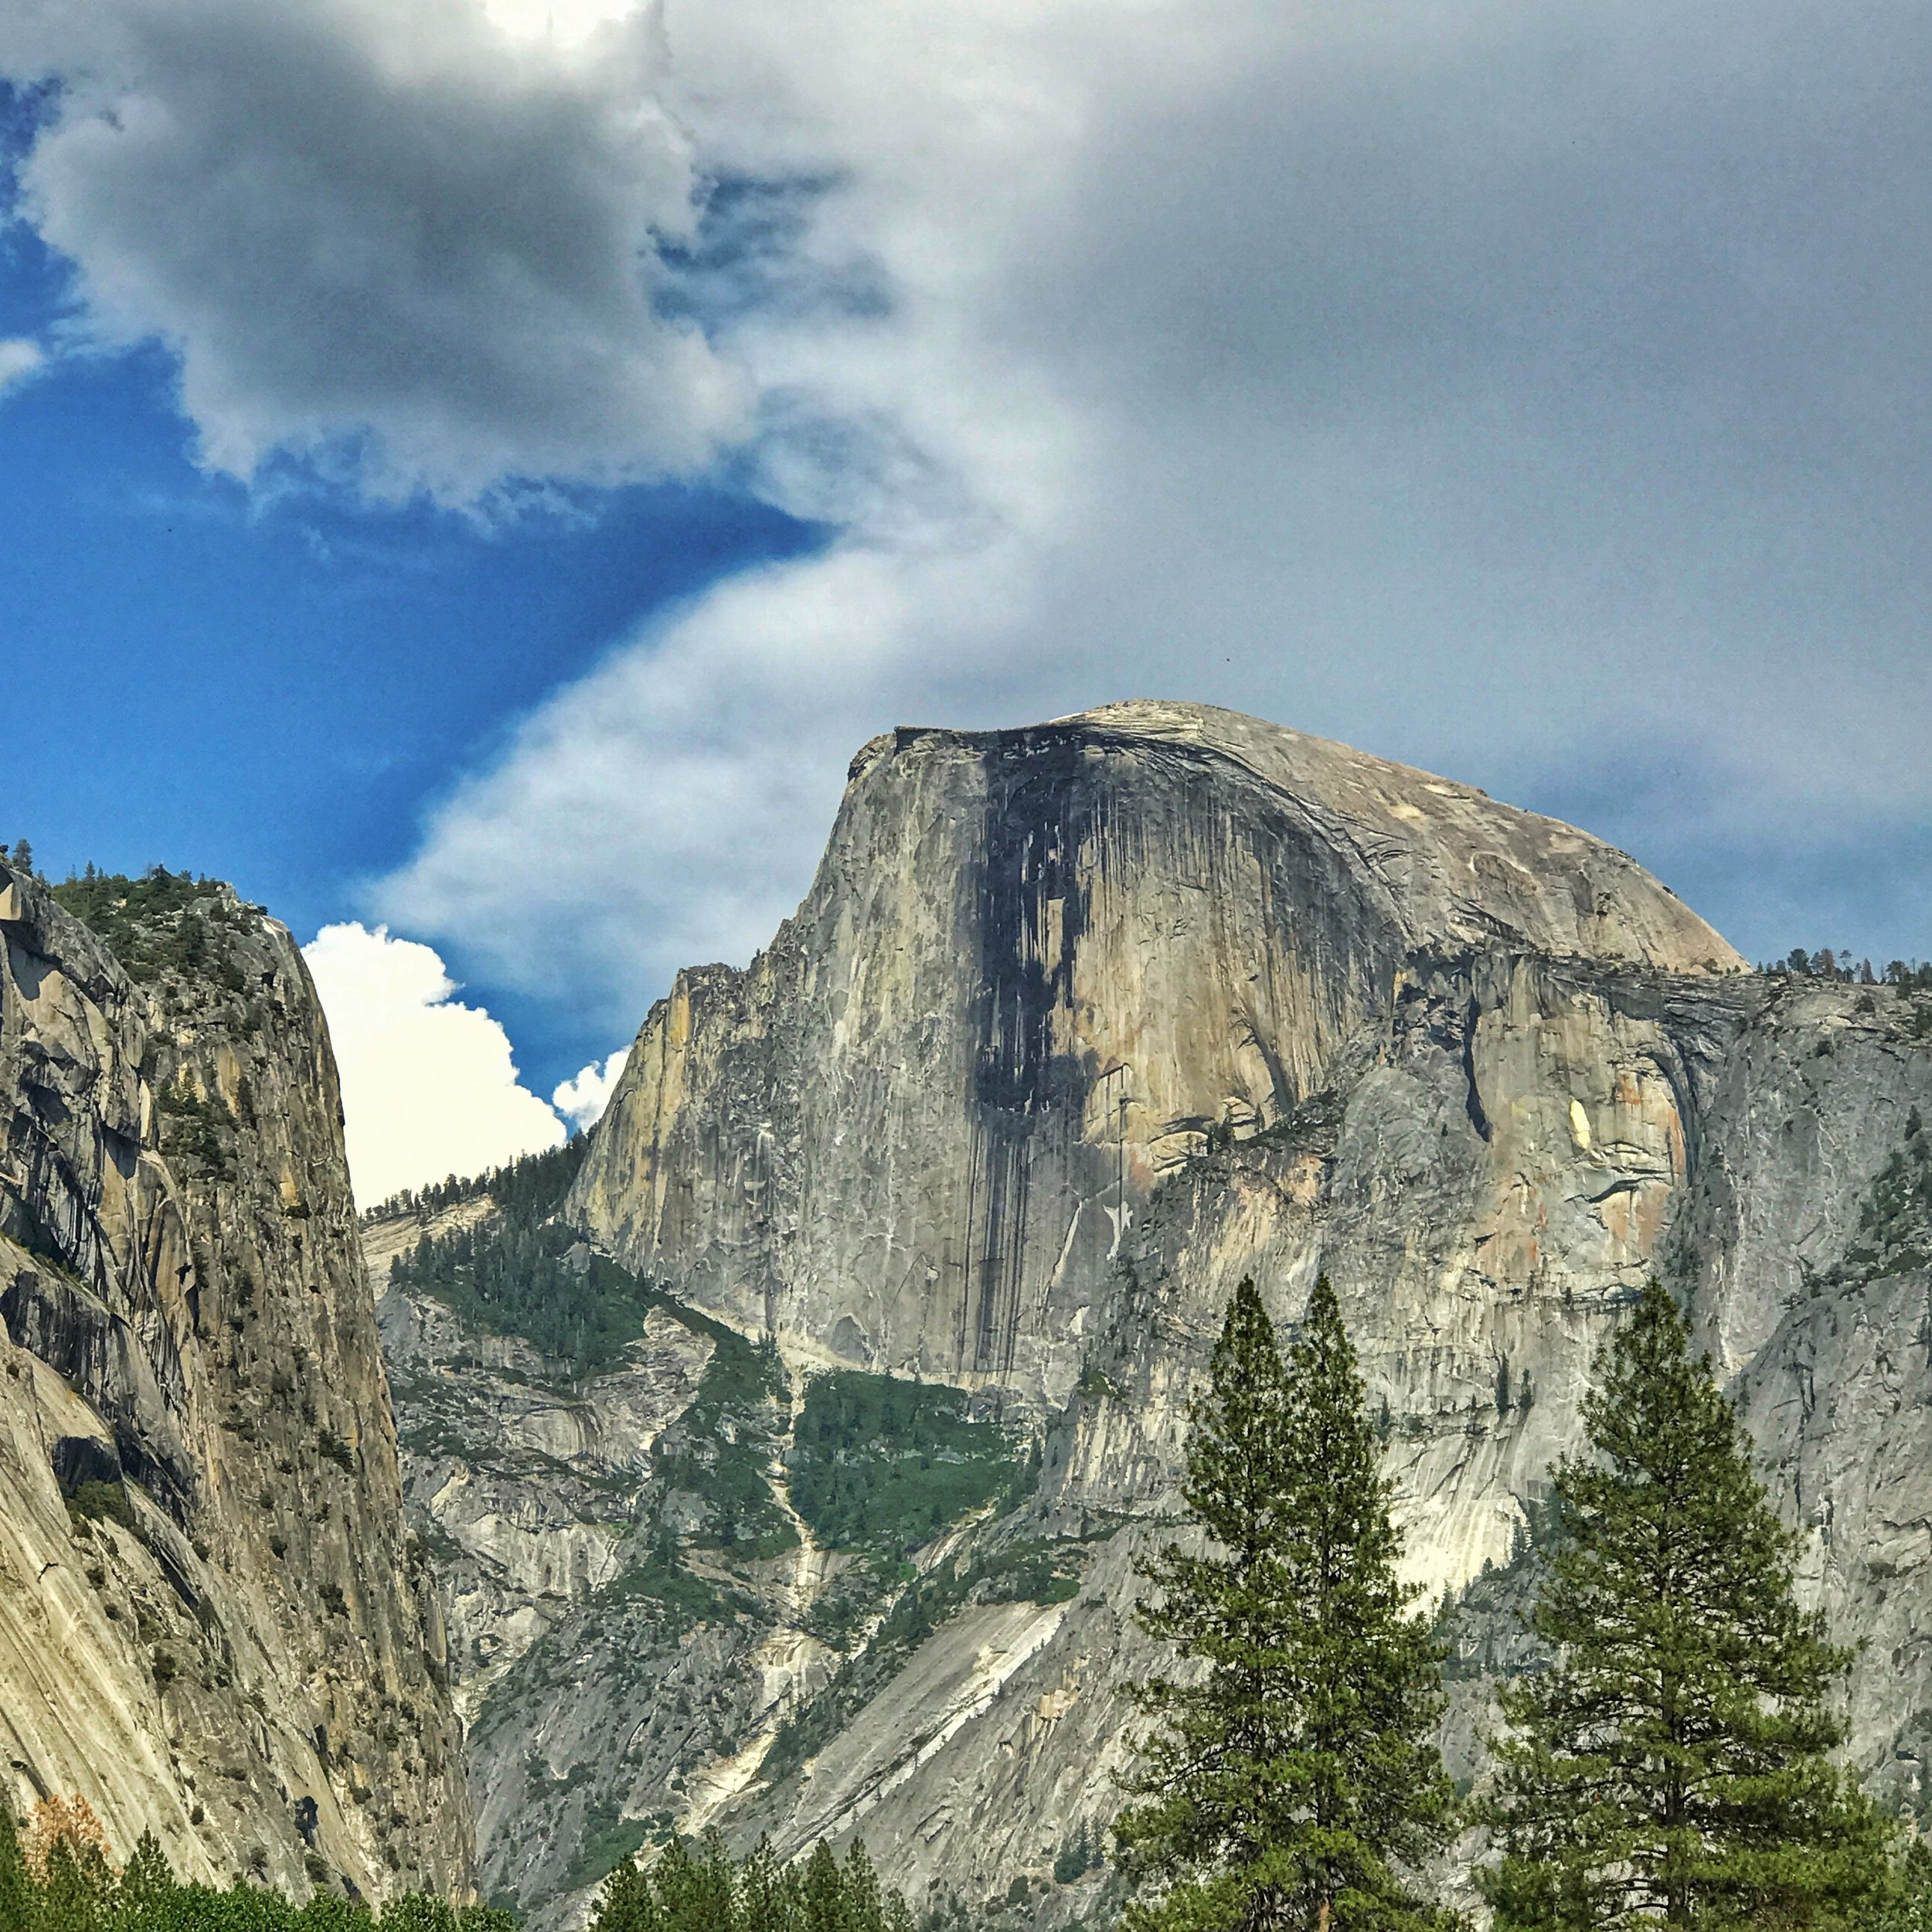 looking back at half dome, our next hike...